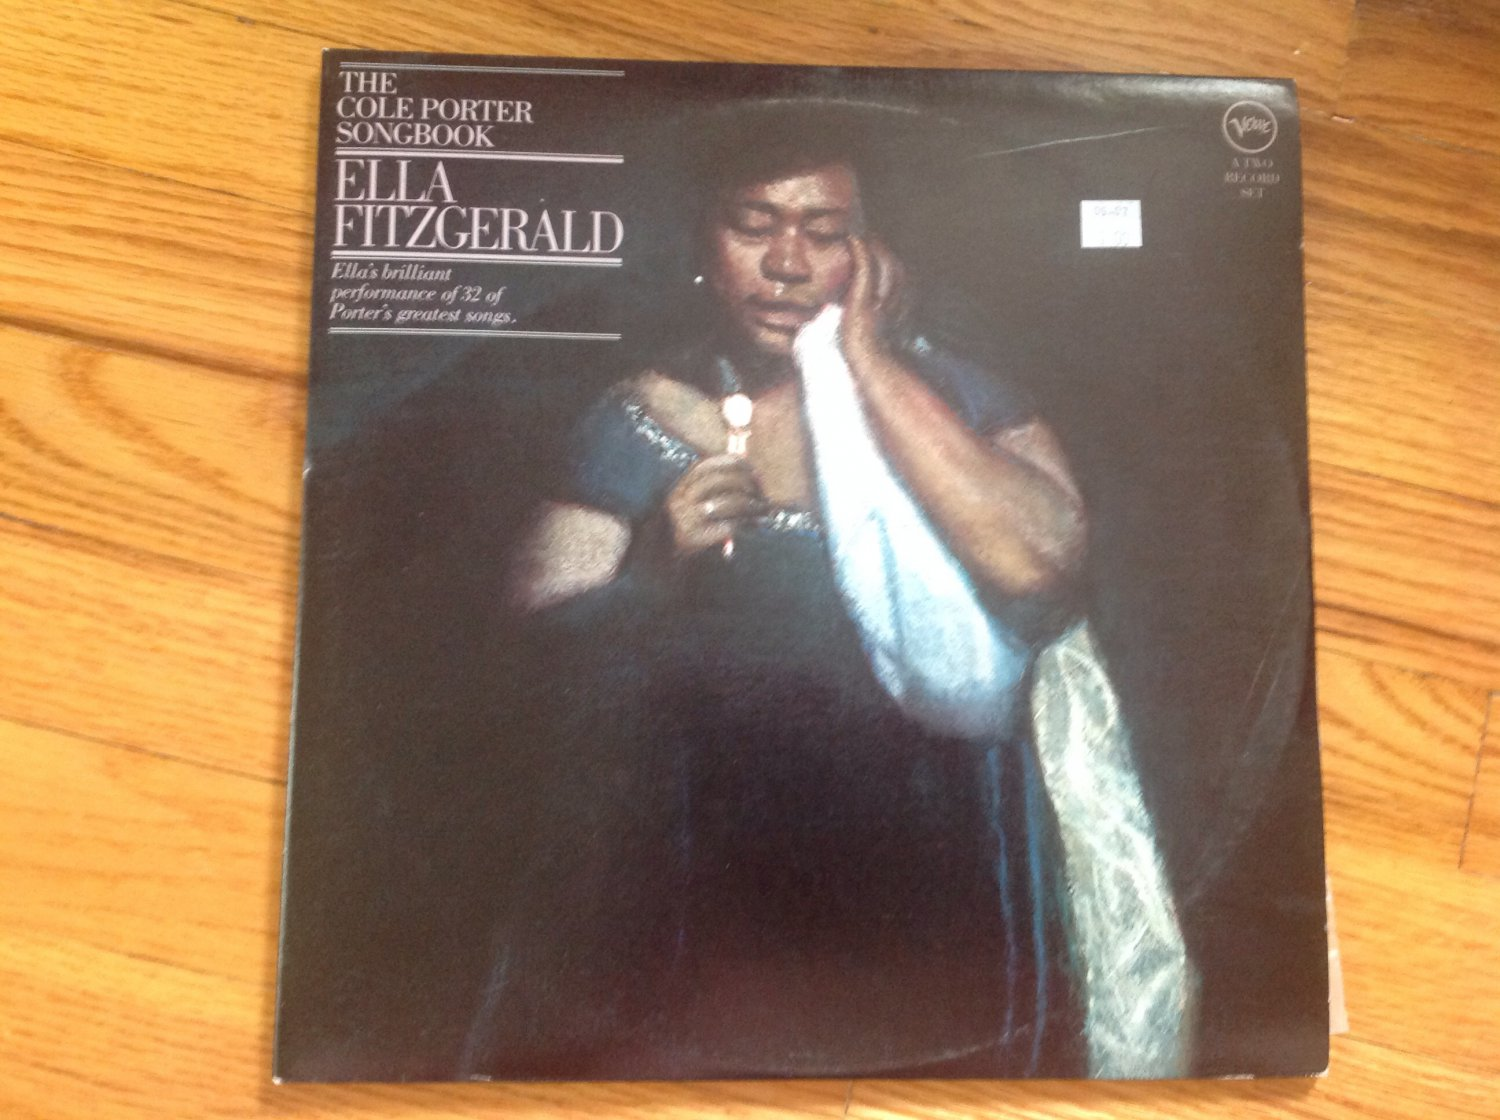 ELLA FITZGERALD: The Cole Porter Songbook 2 LPs, gatefold cover, reissue, looks unplayed